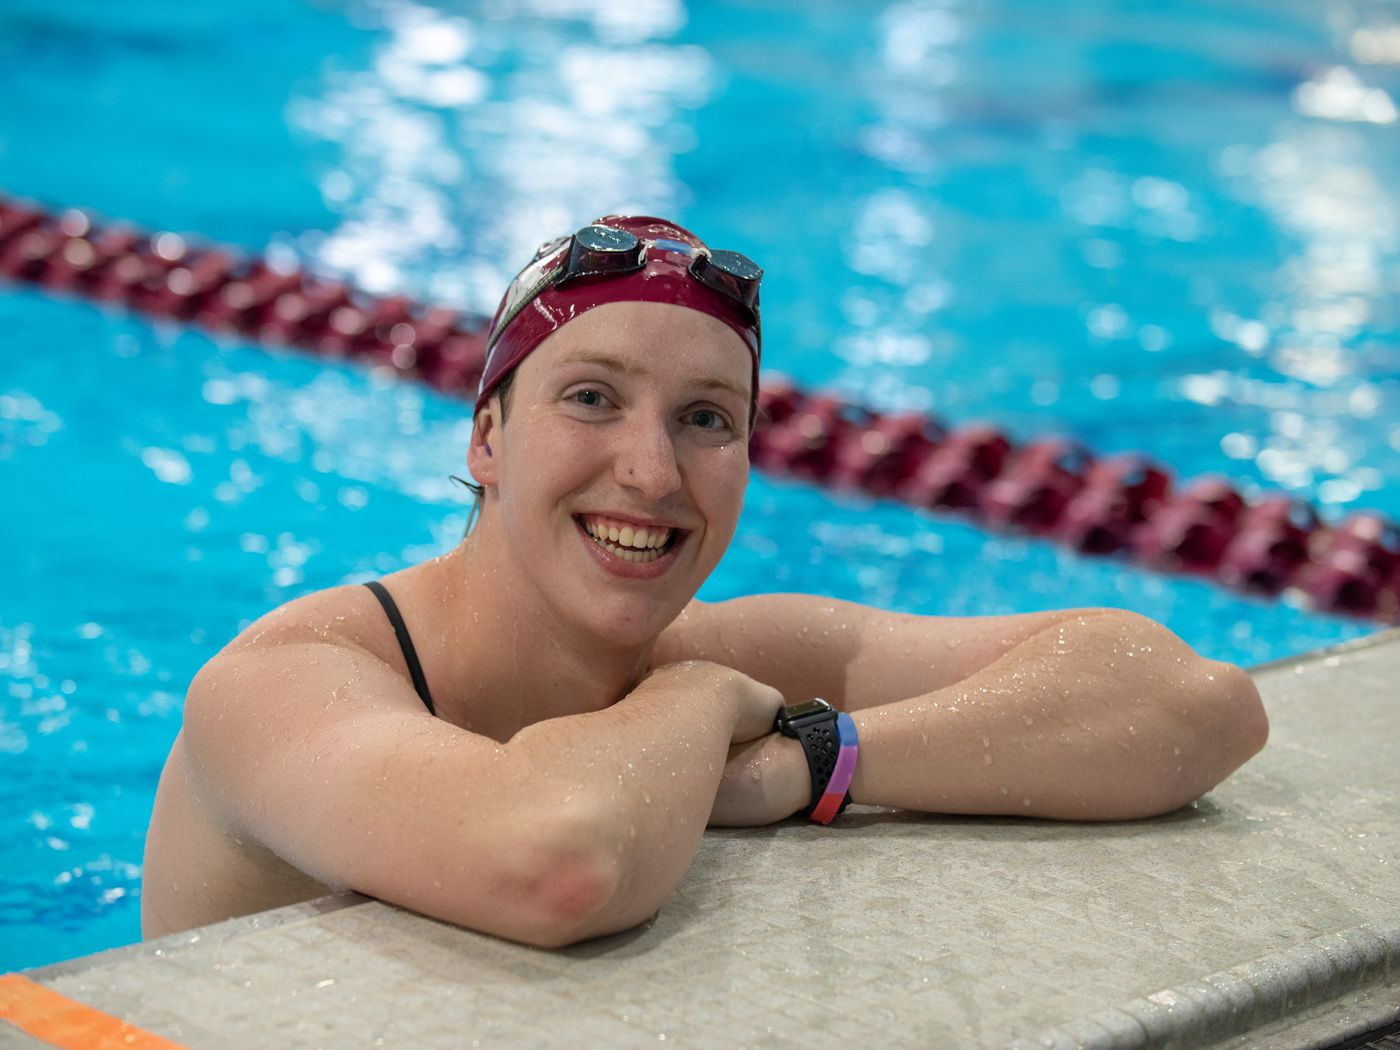 Trans College Swimmer Embraces Her True Self And Desire To Swim Outsports